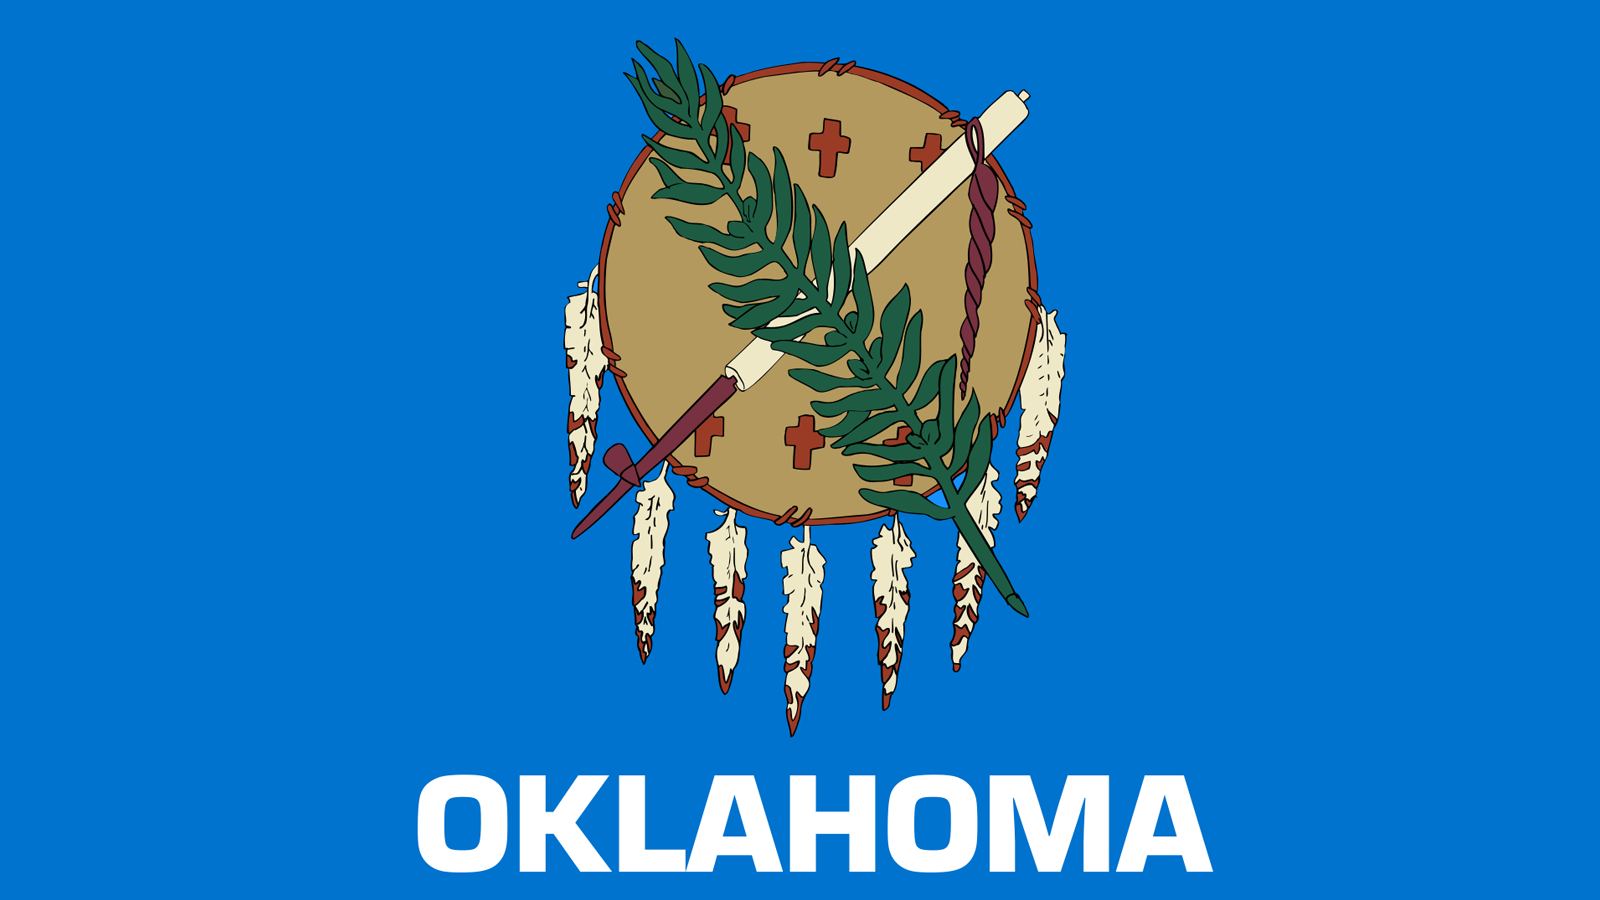 Oklahoma Senate Passes Anti-LGBTQ Bill; HRC Calls on House to Reject It